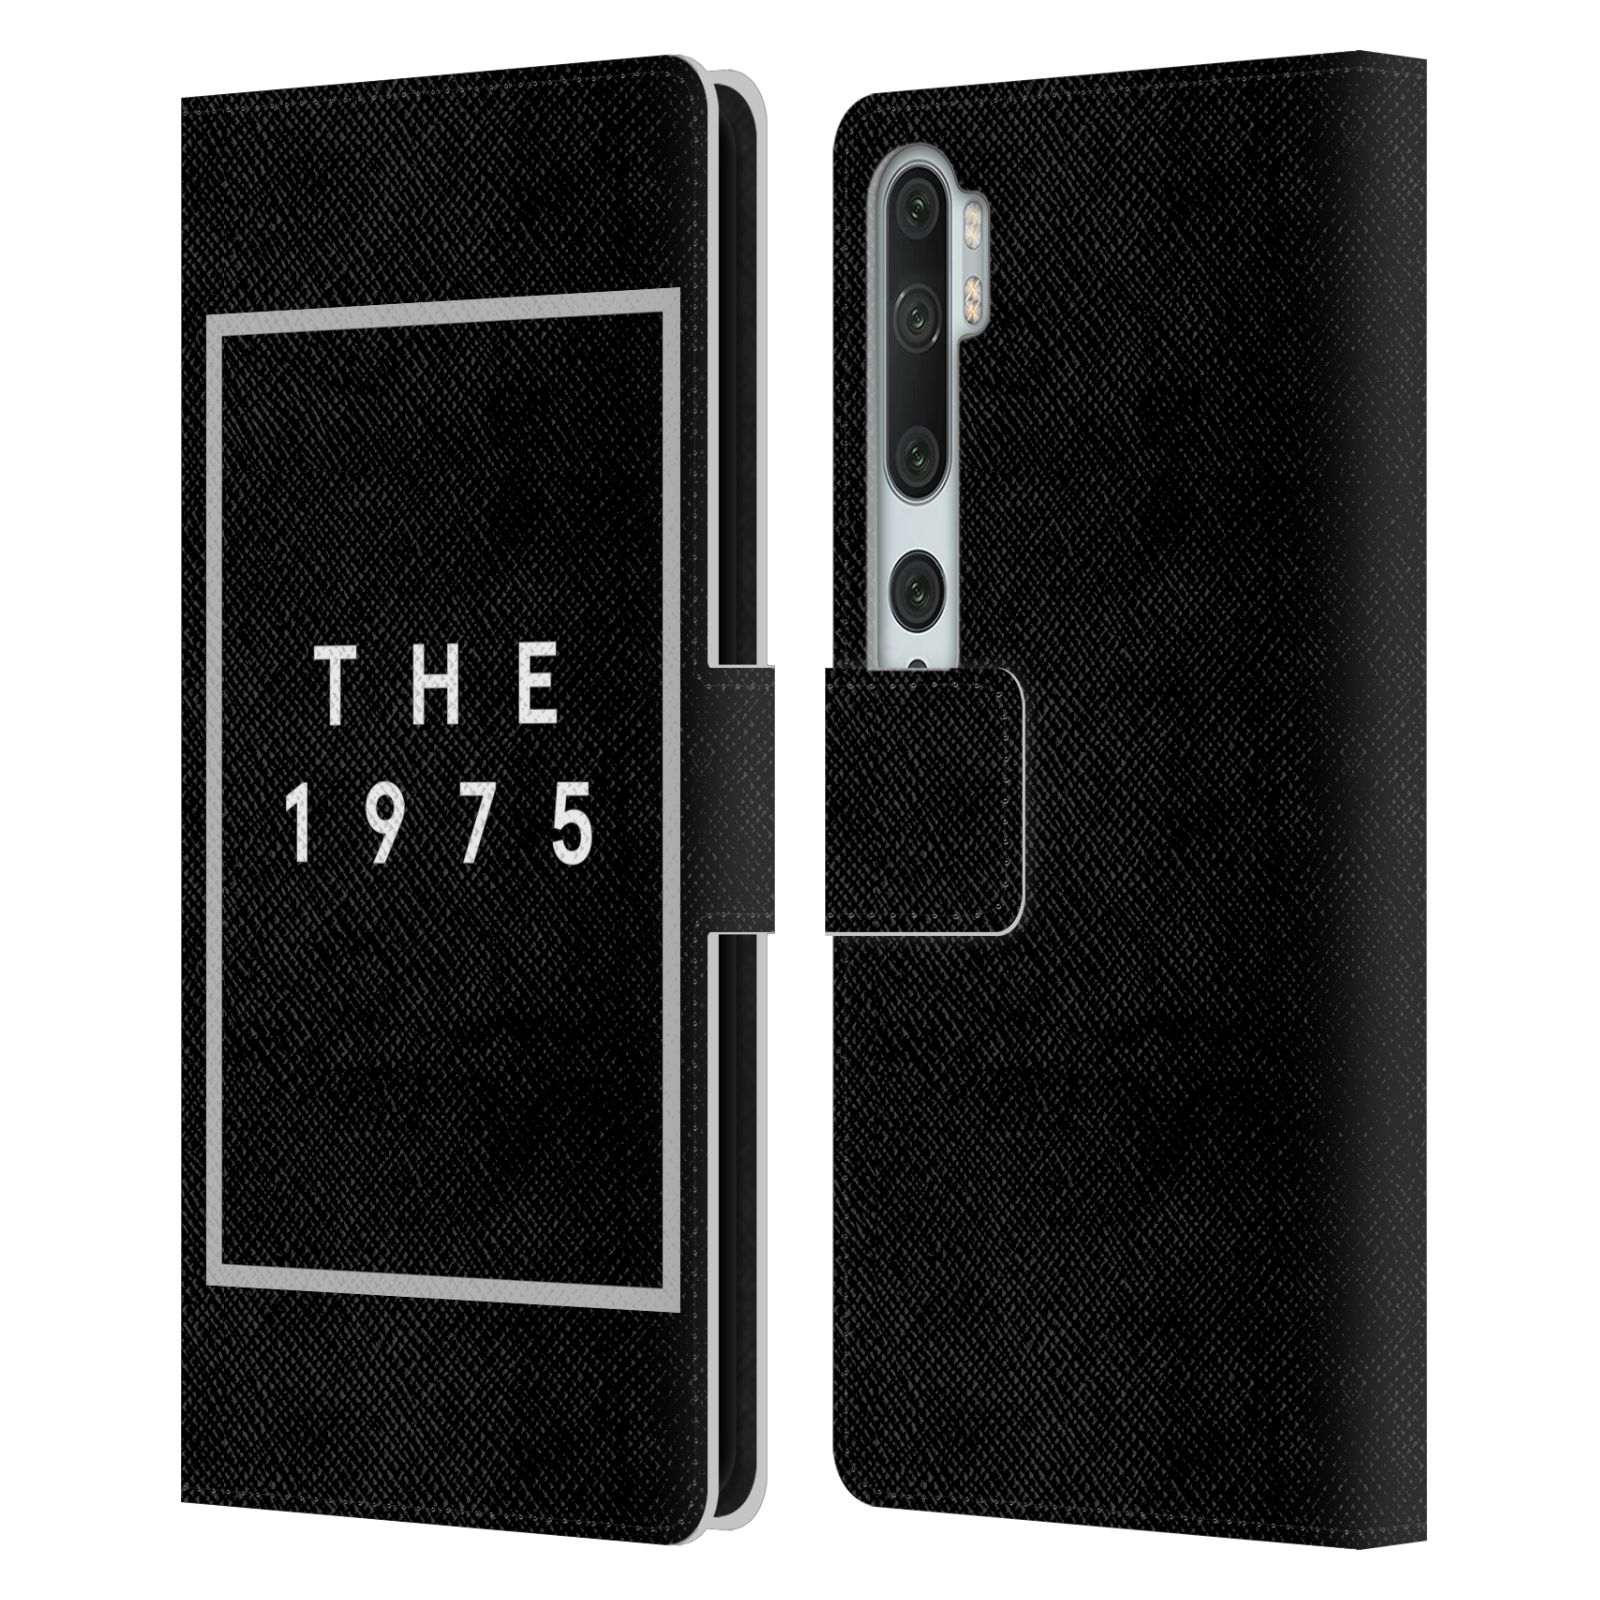 Official The 1975 Key Art Logo Black Leather Book Wallet Case For Xiaomi Mi CC9 Pro / Mi Note 10 / Pro